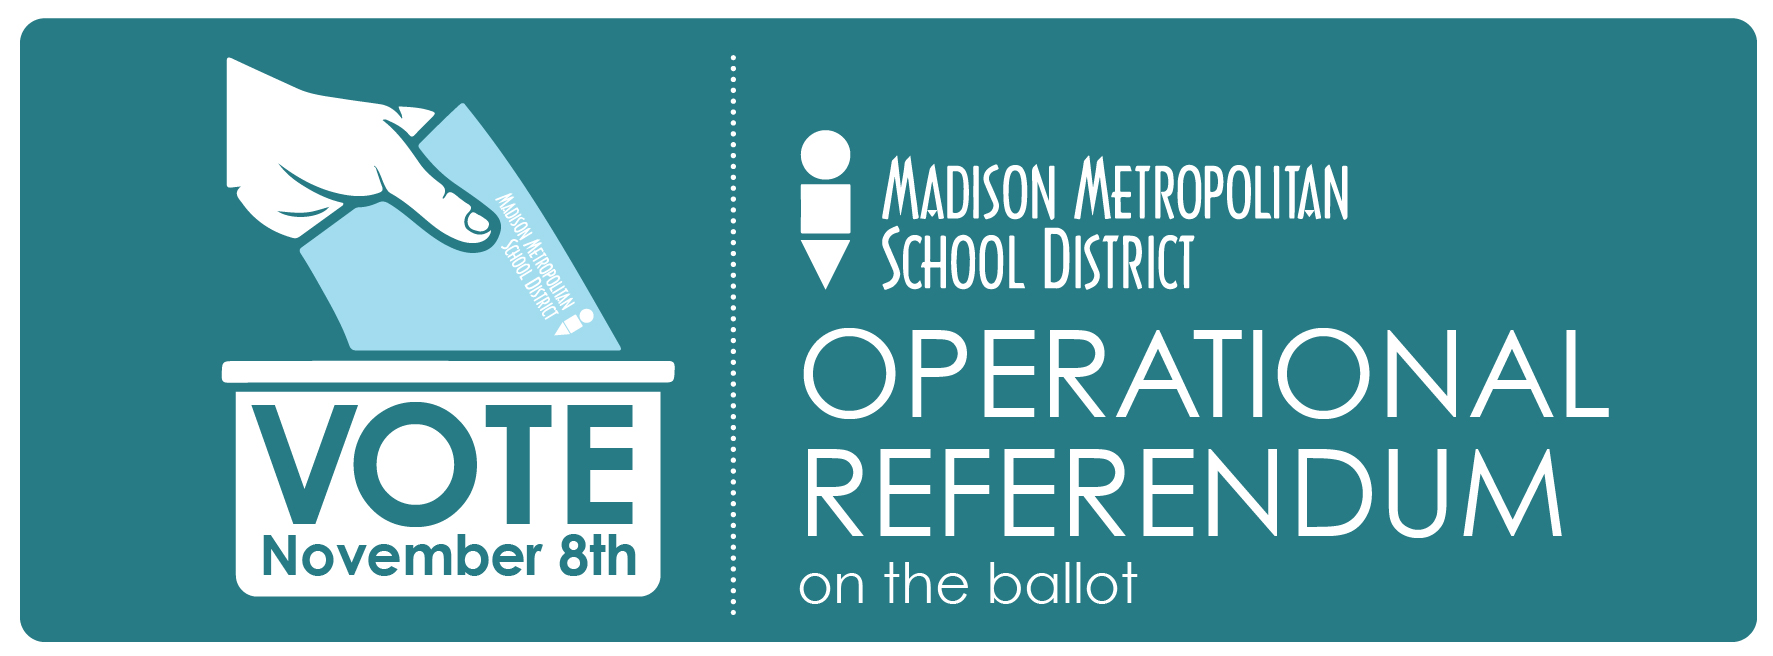 MMSD Operational Referendum on the ballot banner